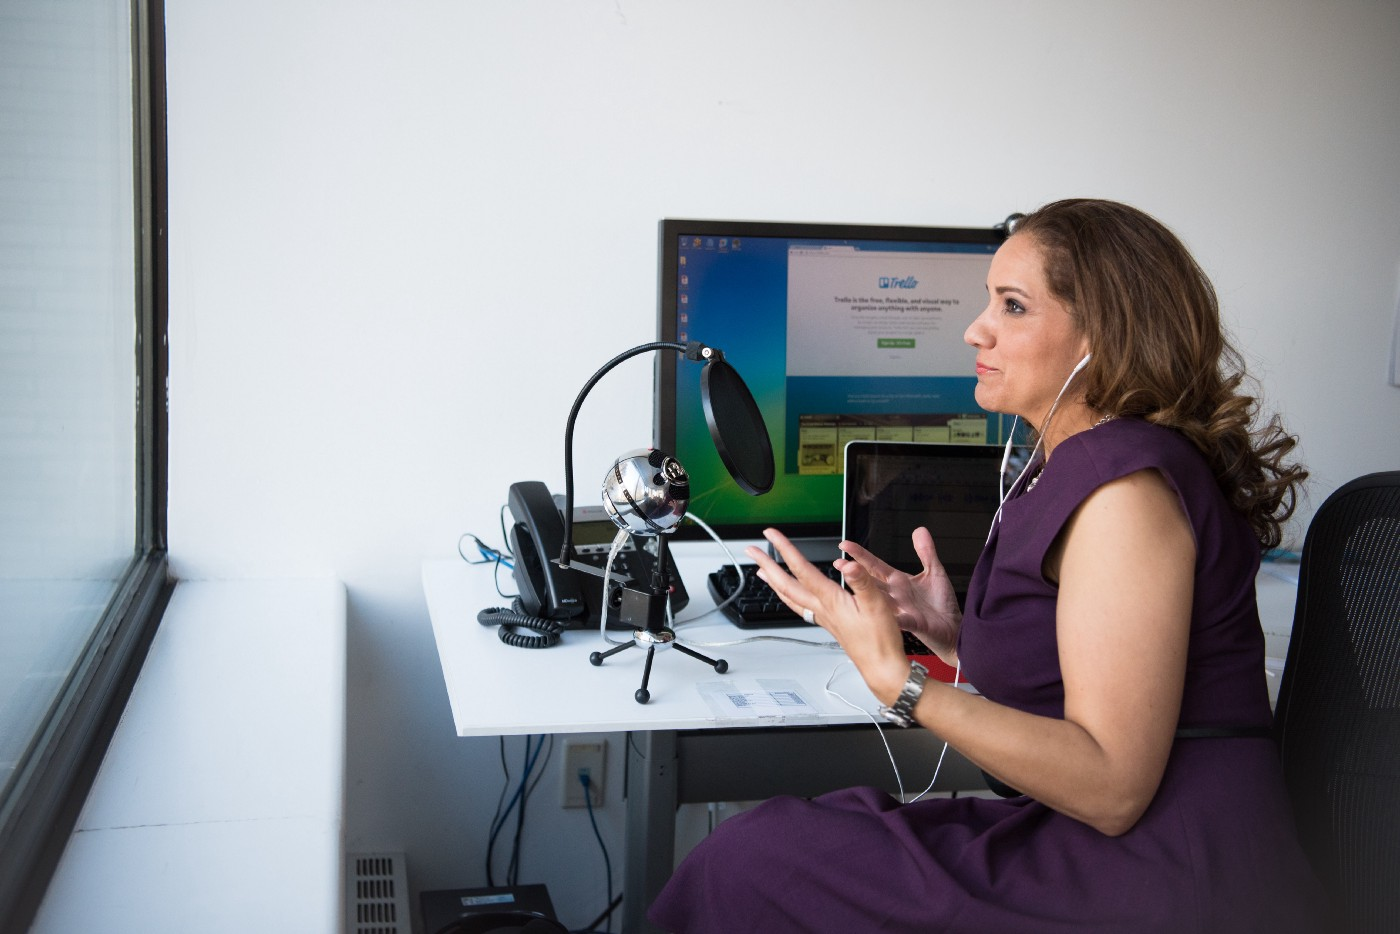 woman speaking into microphone in front of a computer with GitHub on the screen